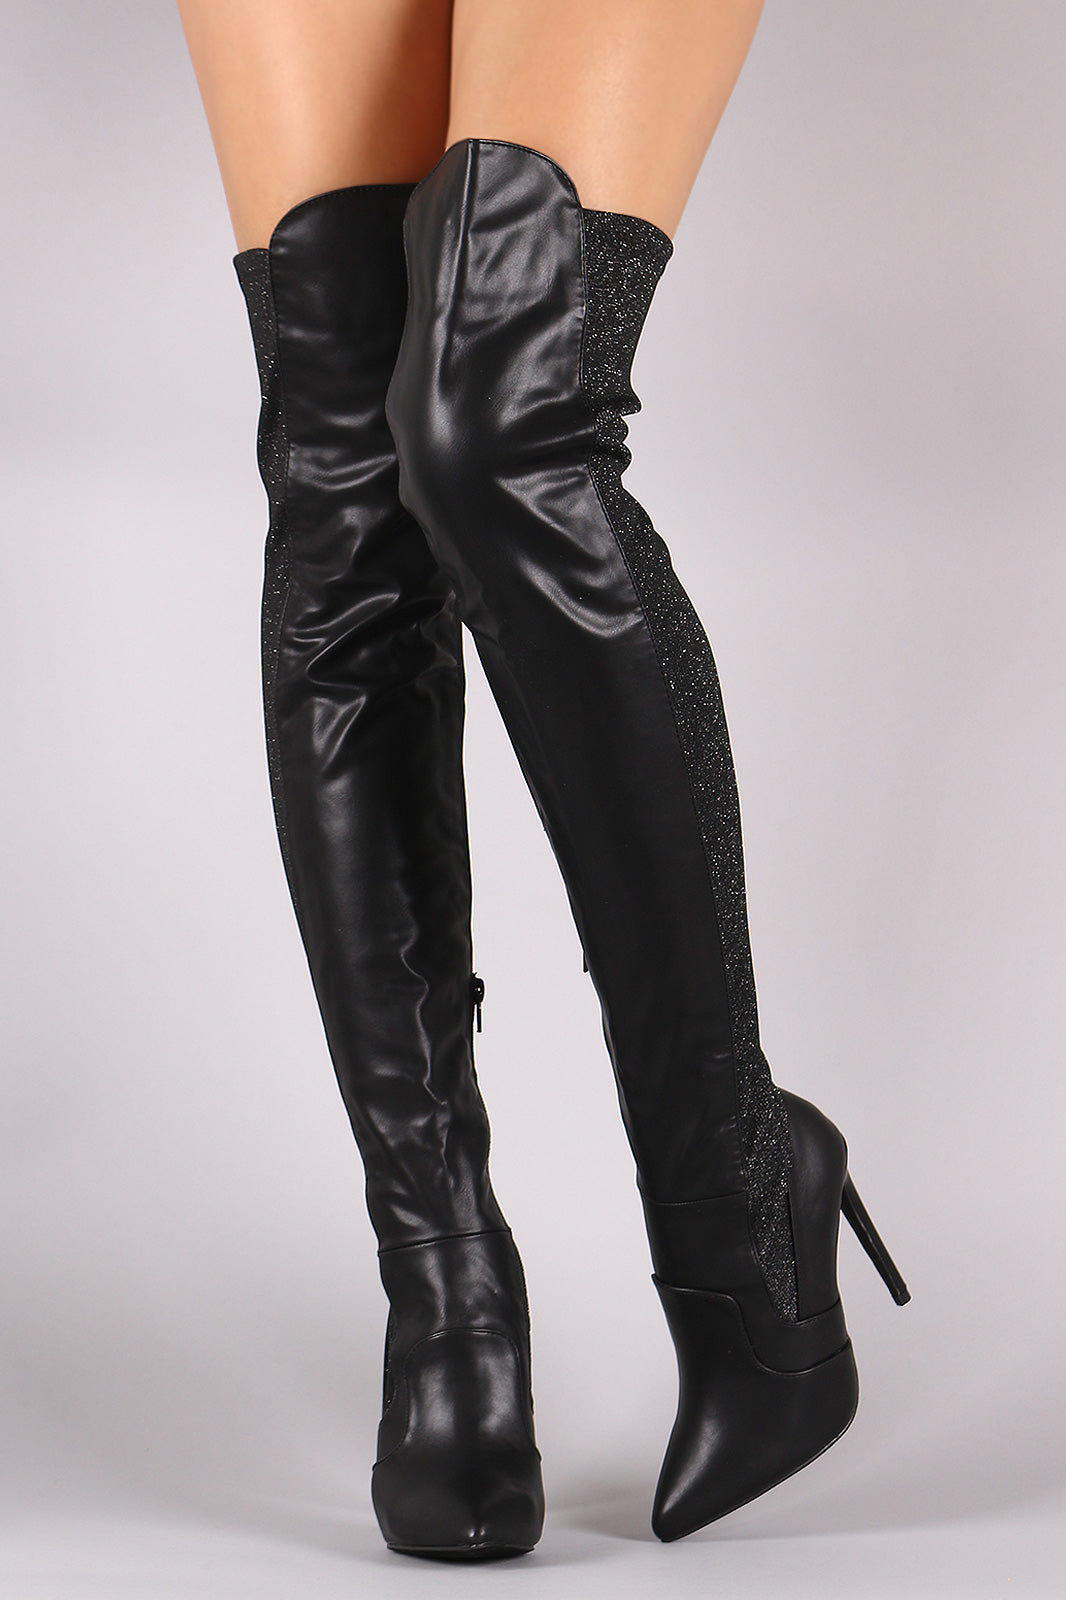 08dc73f43cd1 Liliana Back Glitter Knit Pointy Toe Stiletto Over-The-Knee Boots ...